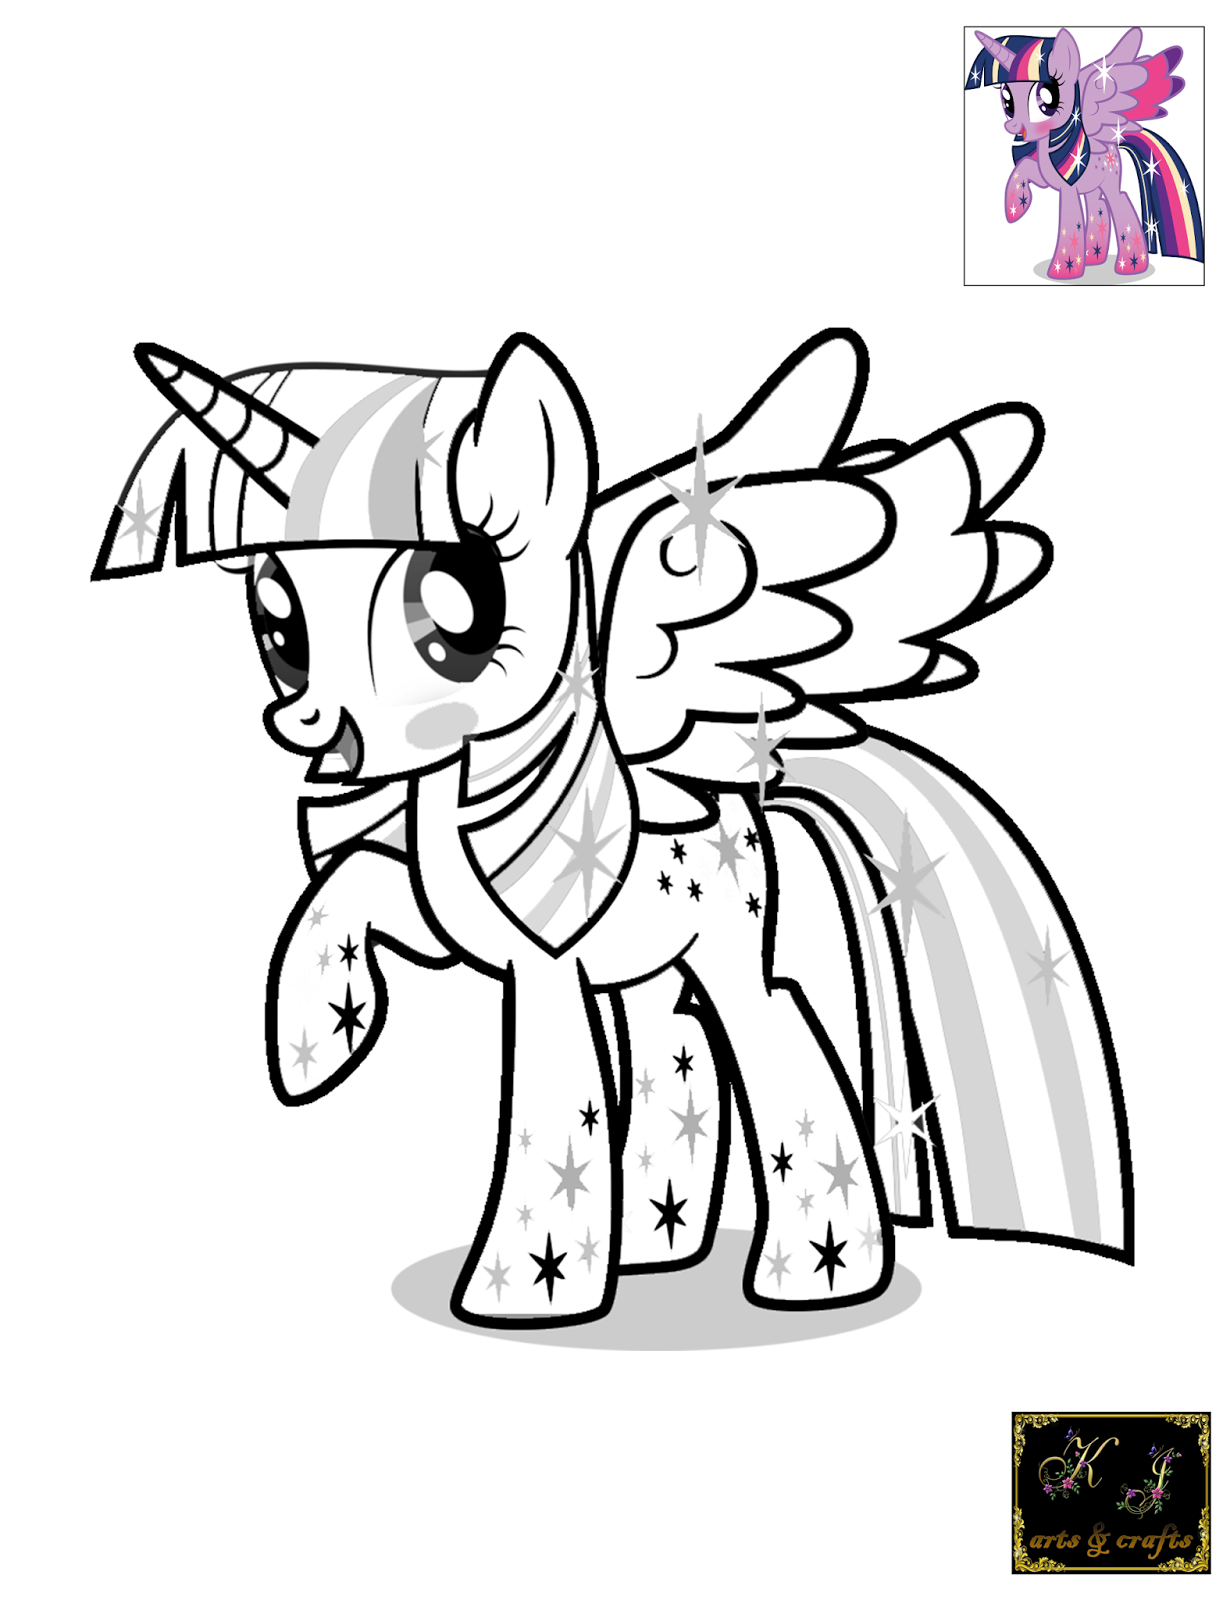 Twilight Sparkle coloring pages to download and print for free |Twilight Sparkle Face Coloring Page